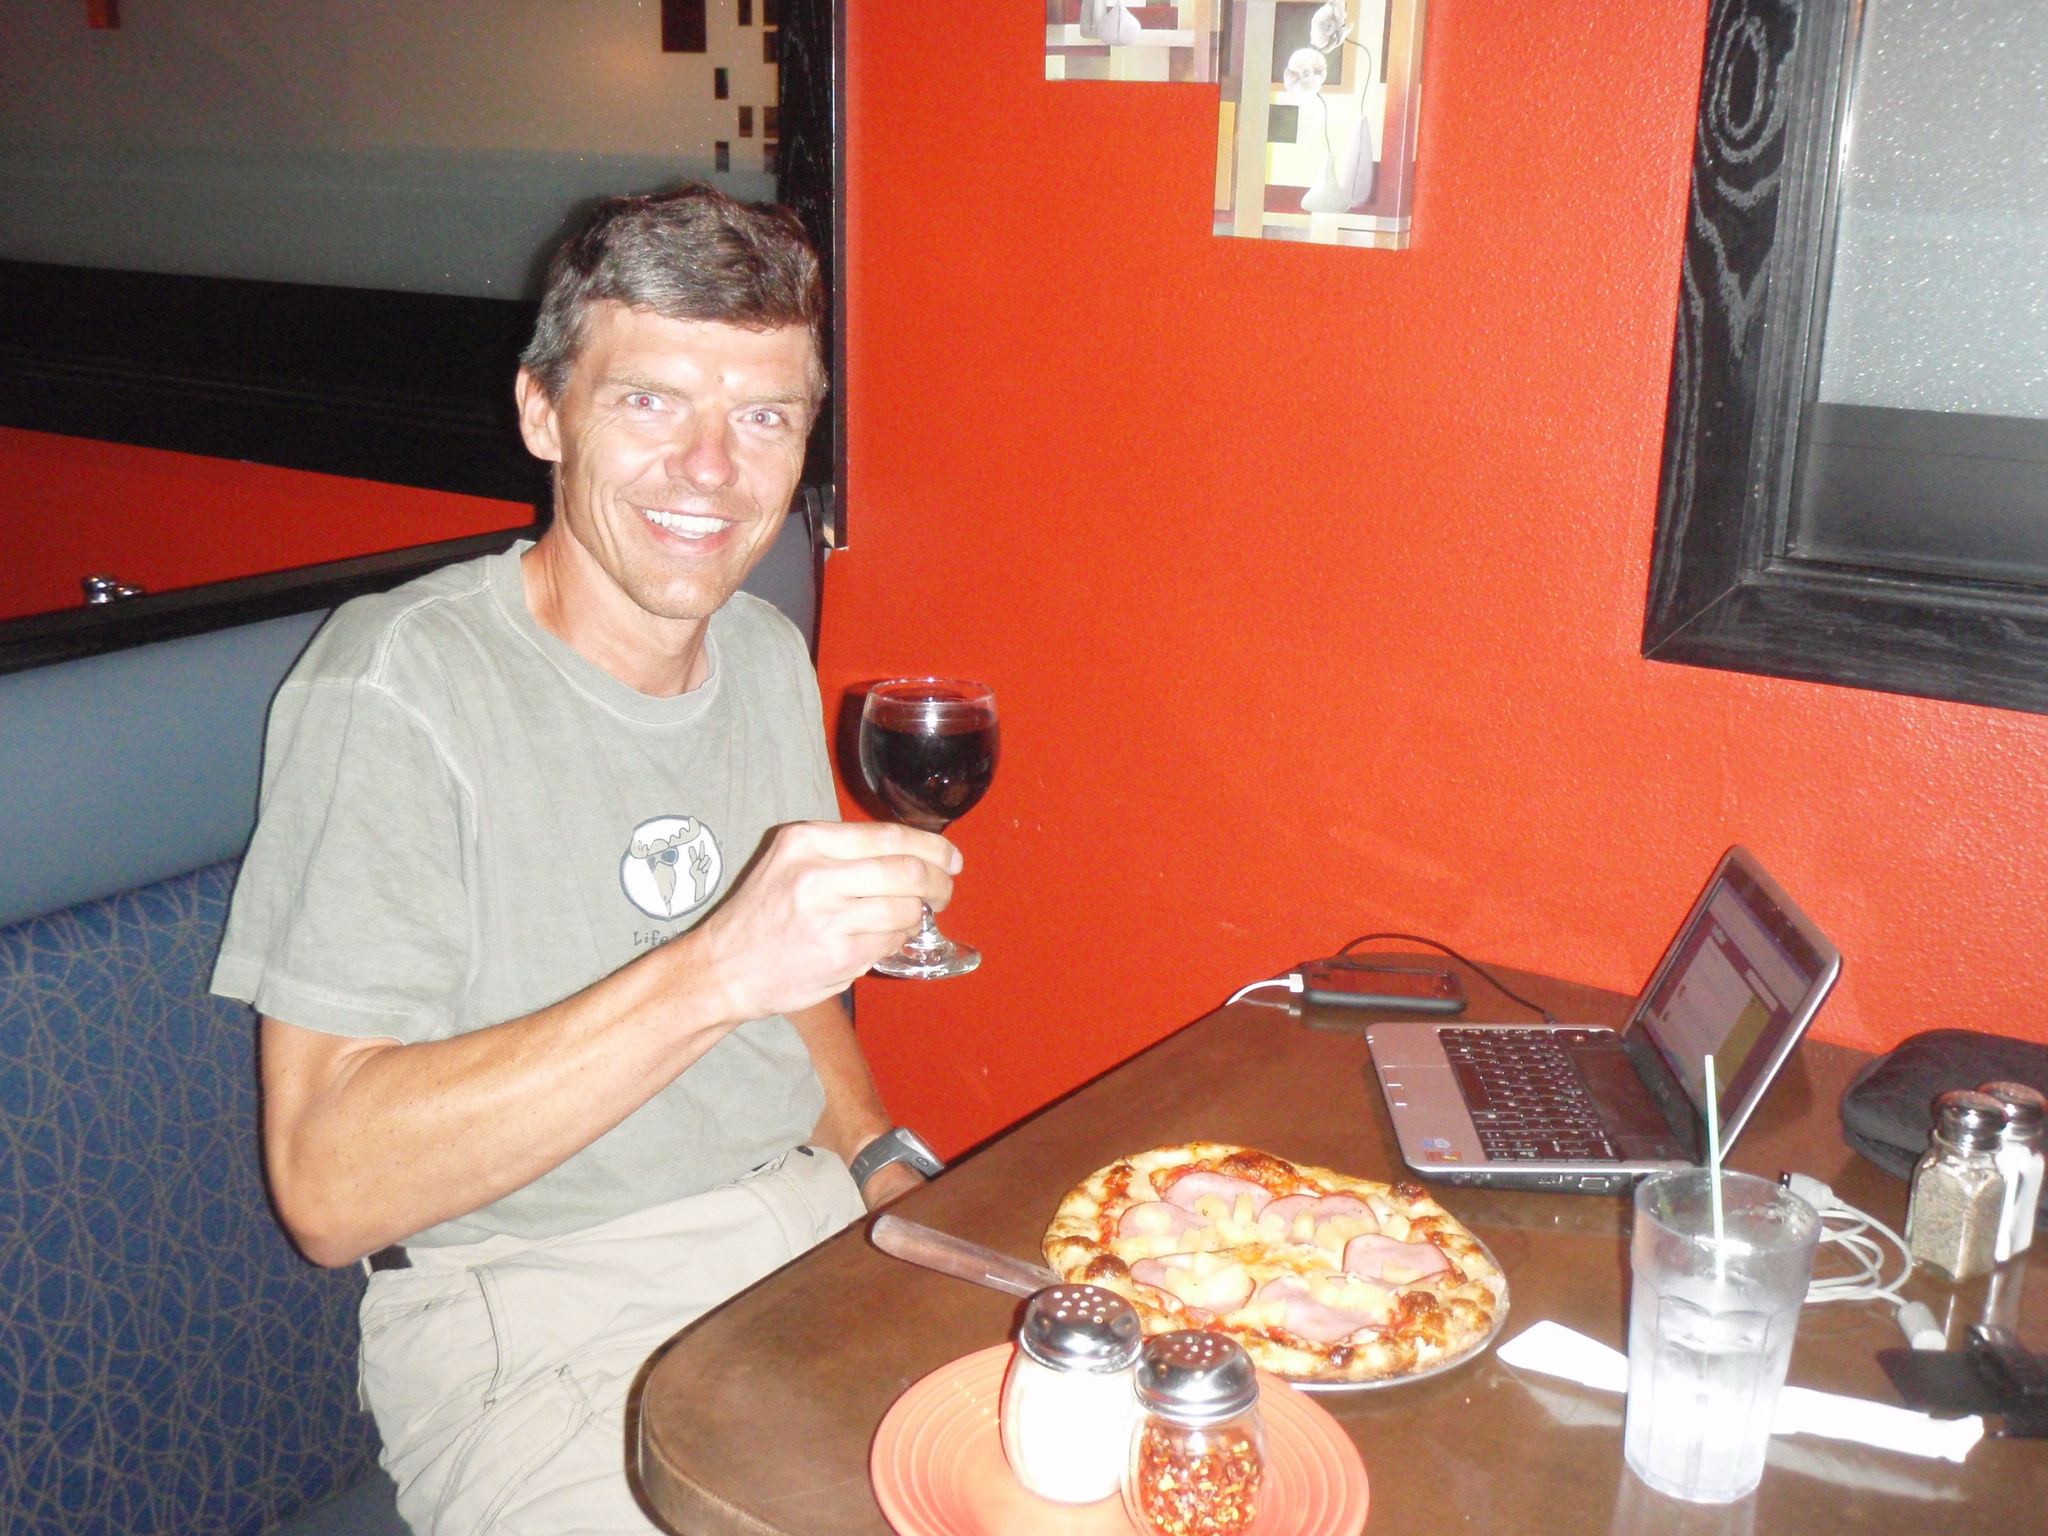 Celebrating the completion of the Canada portion of my ride with Wine and Pizza